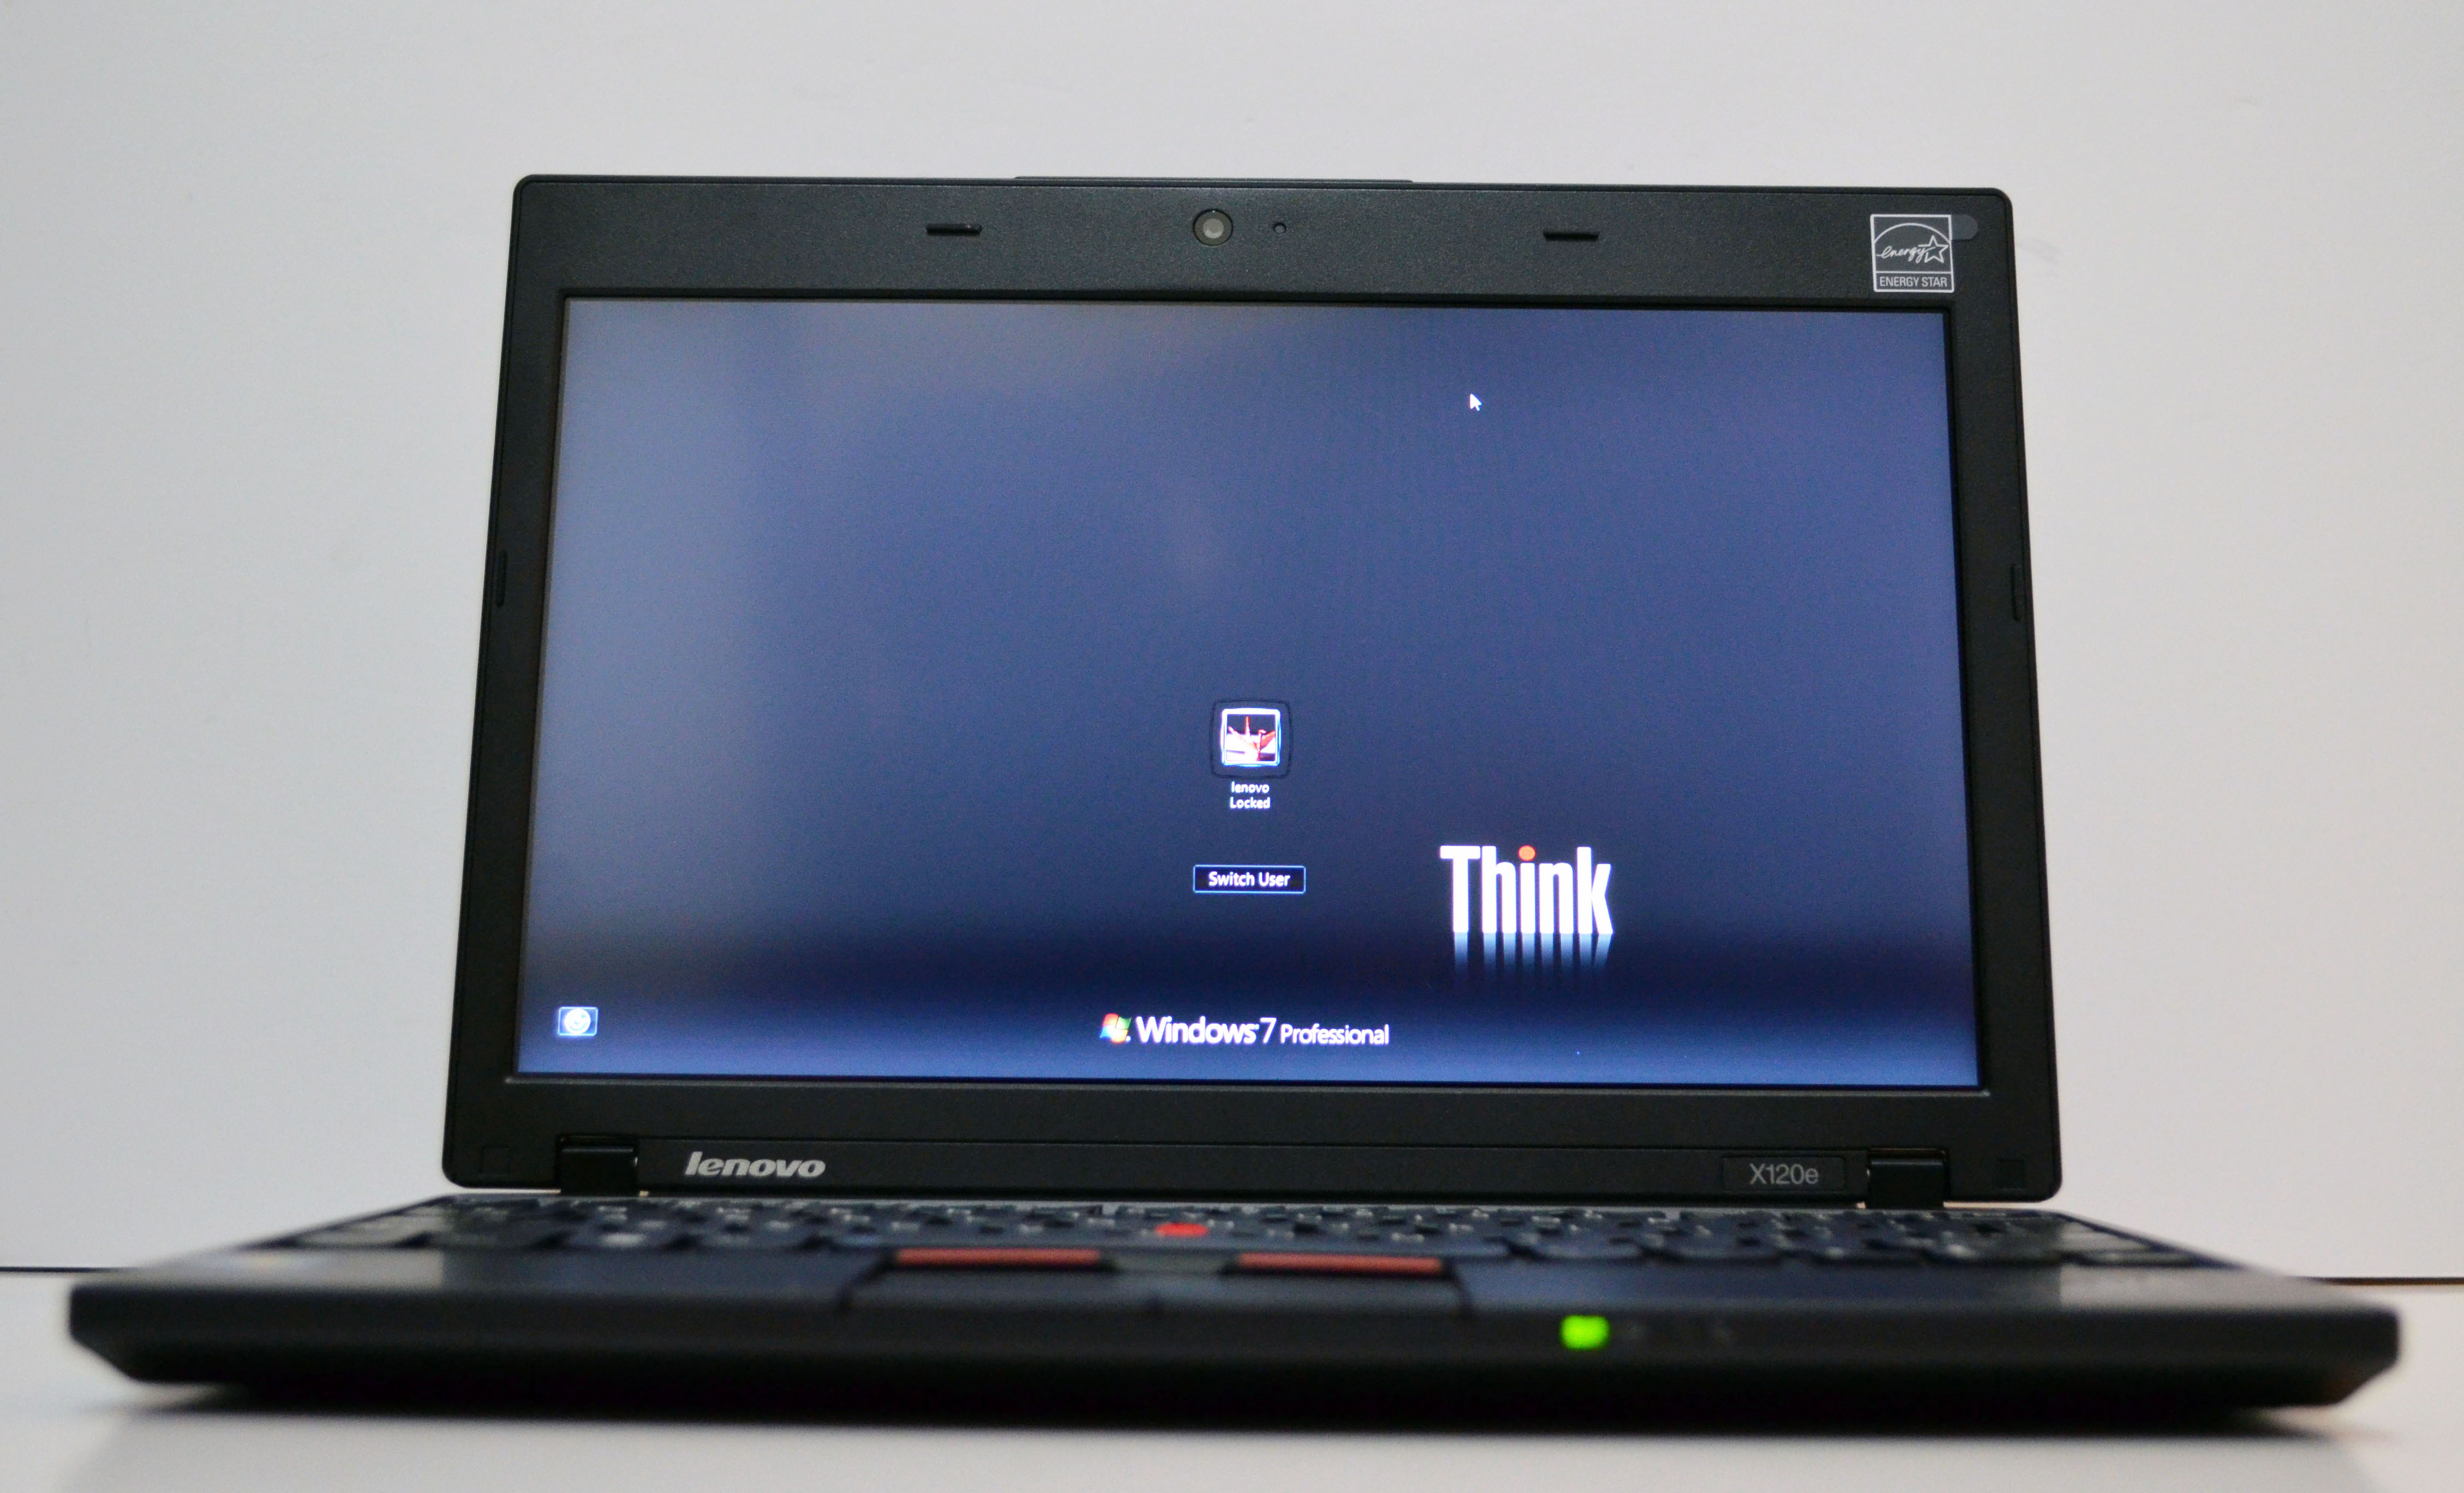 Lenovo ThinkPad X120e Review: Affordable Ultraportable